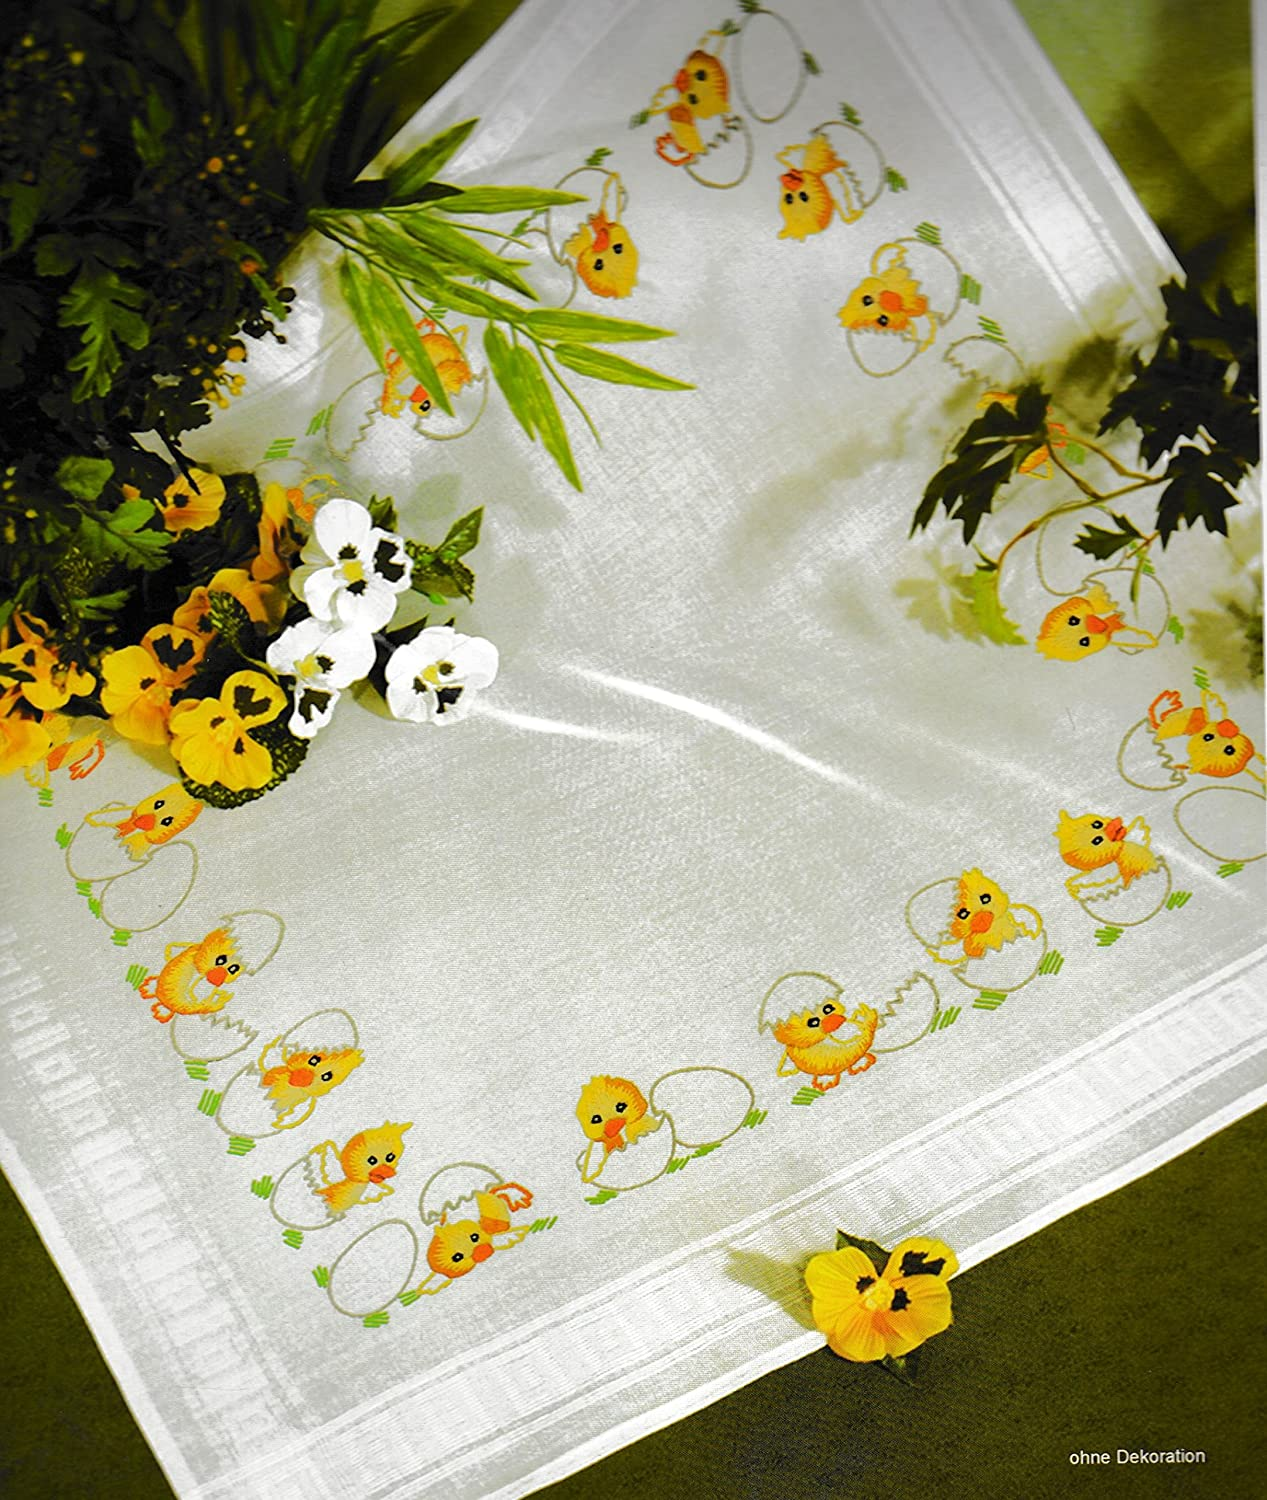 Roses II 6824 Printed Stamped Cross Stitch Tablecloth Kit for Embroidery